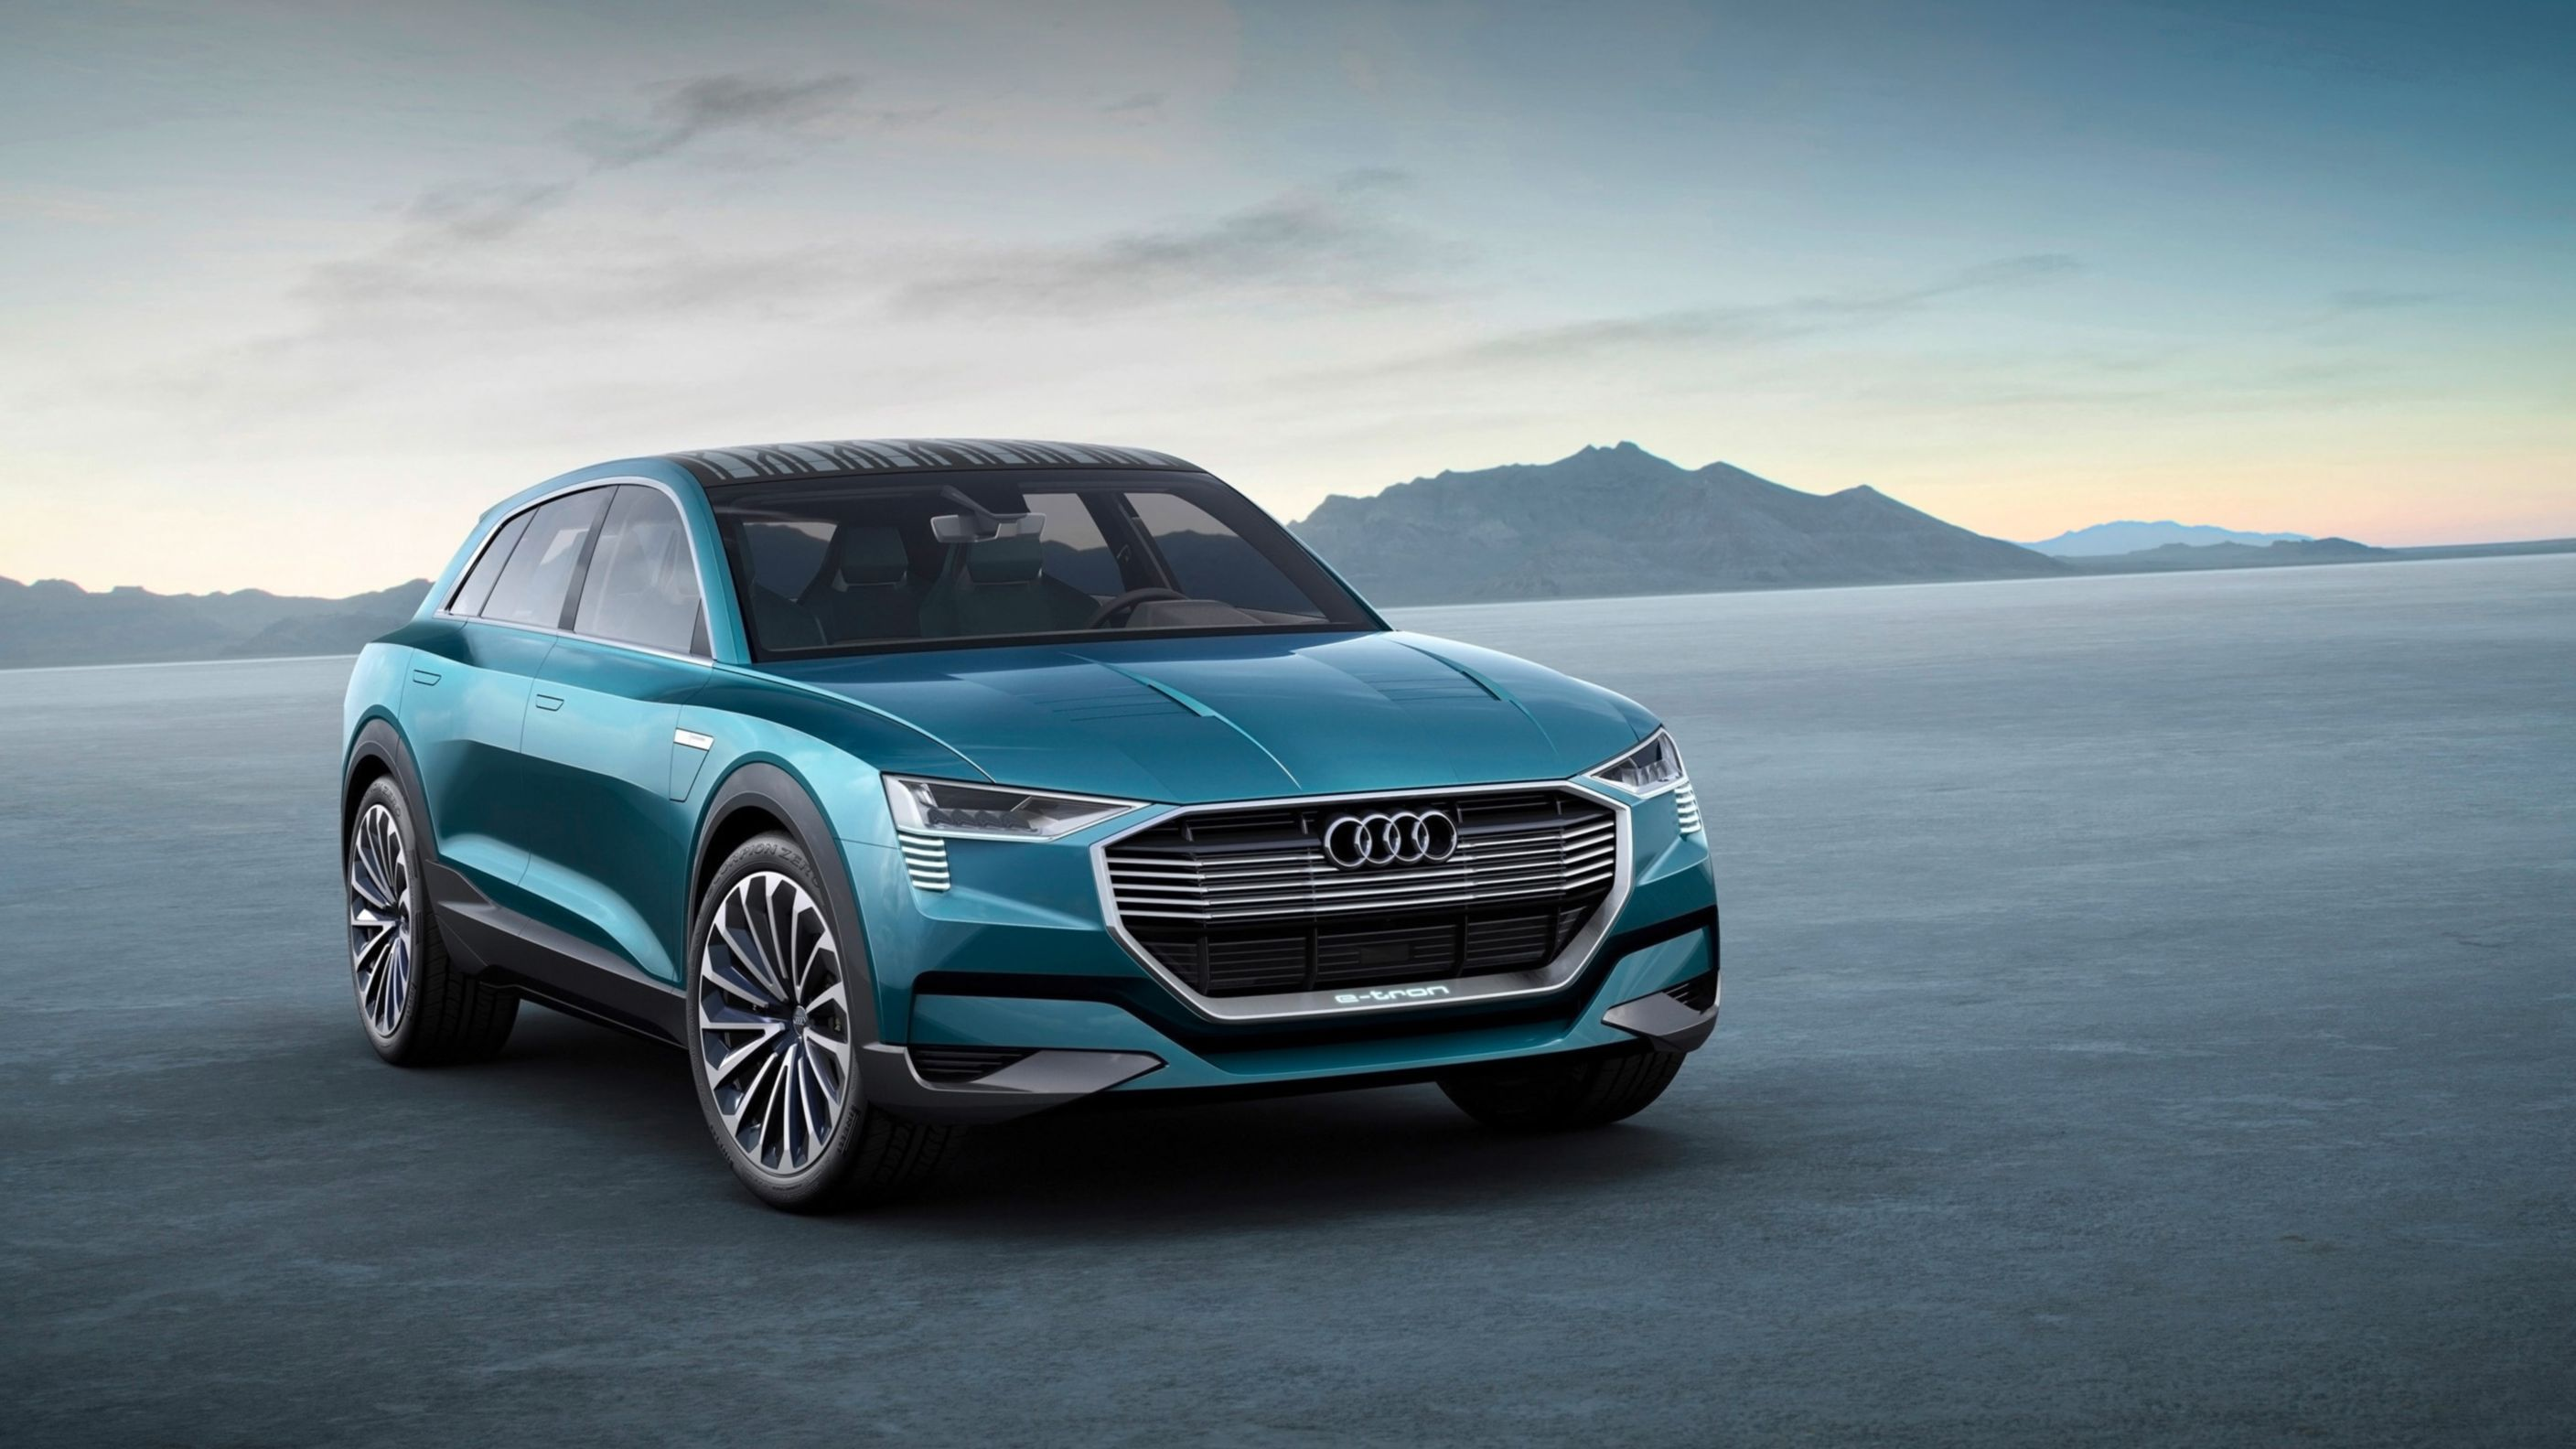 Download free HD 2015 Audi E Tron Quattro Concept HD Wallpaper, image